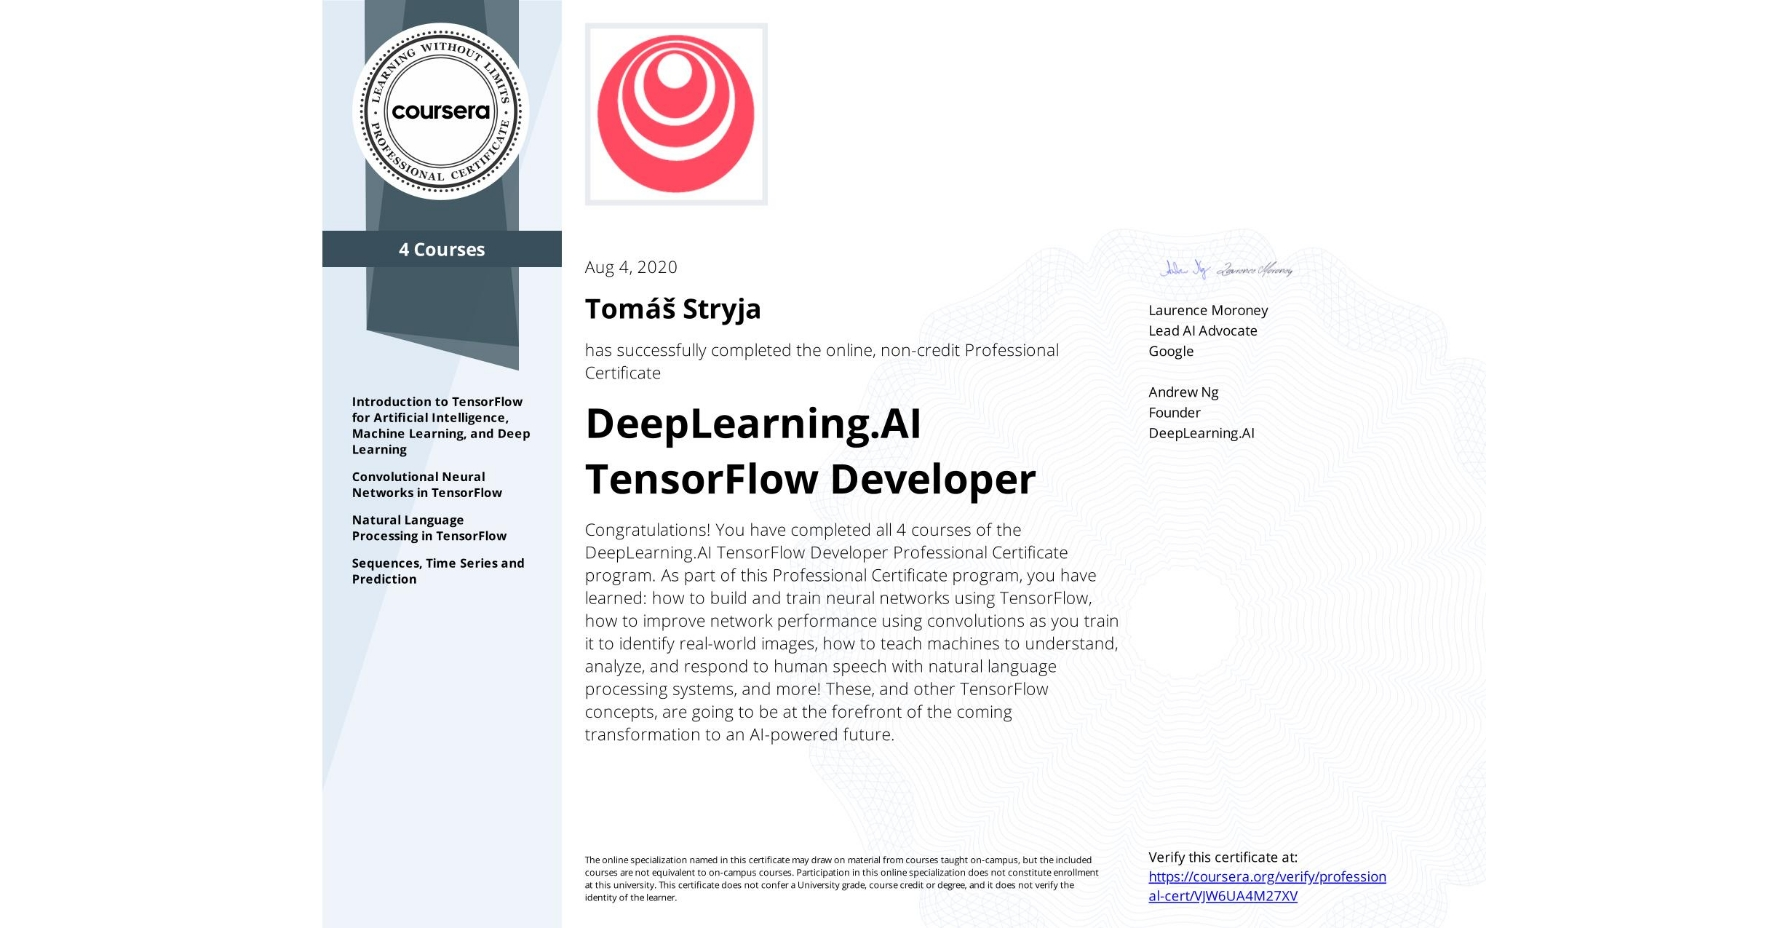 View certificate for Tomáš Stryja, DeepLearning.AI TensorFlow Developer, offered through Coursera. Congratulations! You have completed all 4 courses of the DeepLearning.AI TensorFlow Developer Professional Certificate program.   As part of this Professional Certificate program, you have learned: how to build and train neural networks using TensorFlow, how to improve network performance using convolutions as you train it to identify real-world images, how to teach machines to understand, analyze, and respond to human speech with natural language processing systems, and more!  These, and other TensorFlow concepts, are going to be at the forefront of the coming transformation to an AI-powered future.